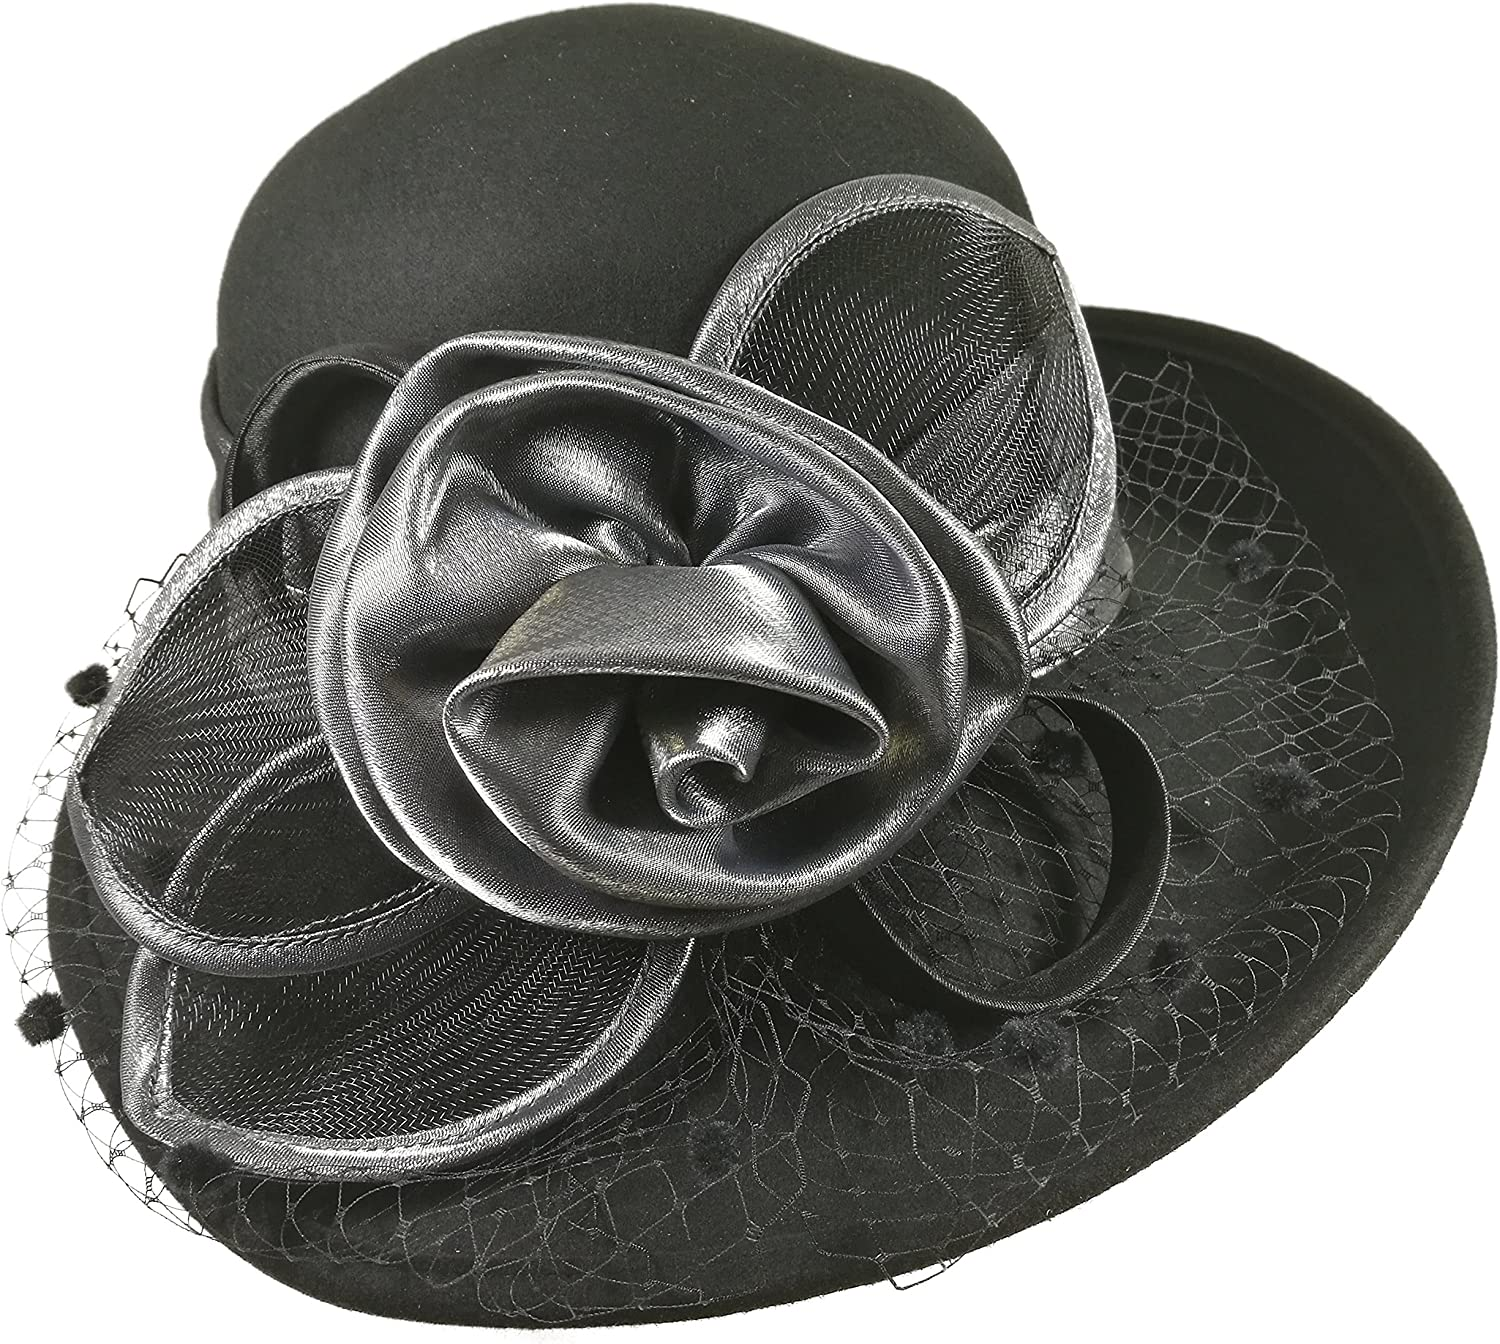 Facinie Dress felt hat profile with angled brim one side feather flower bow